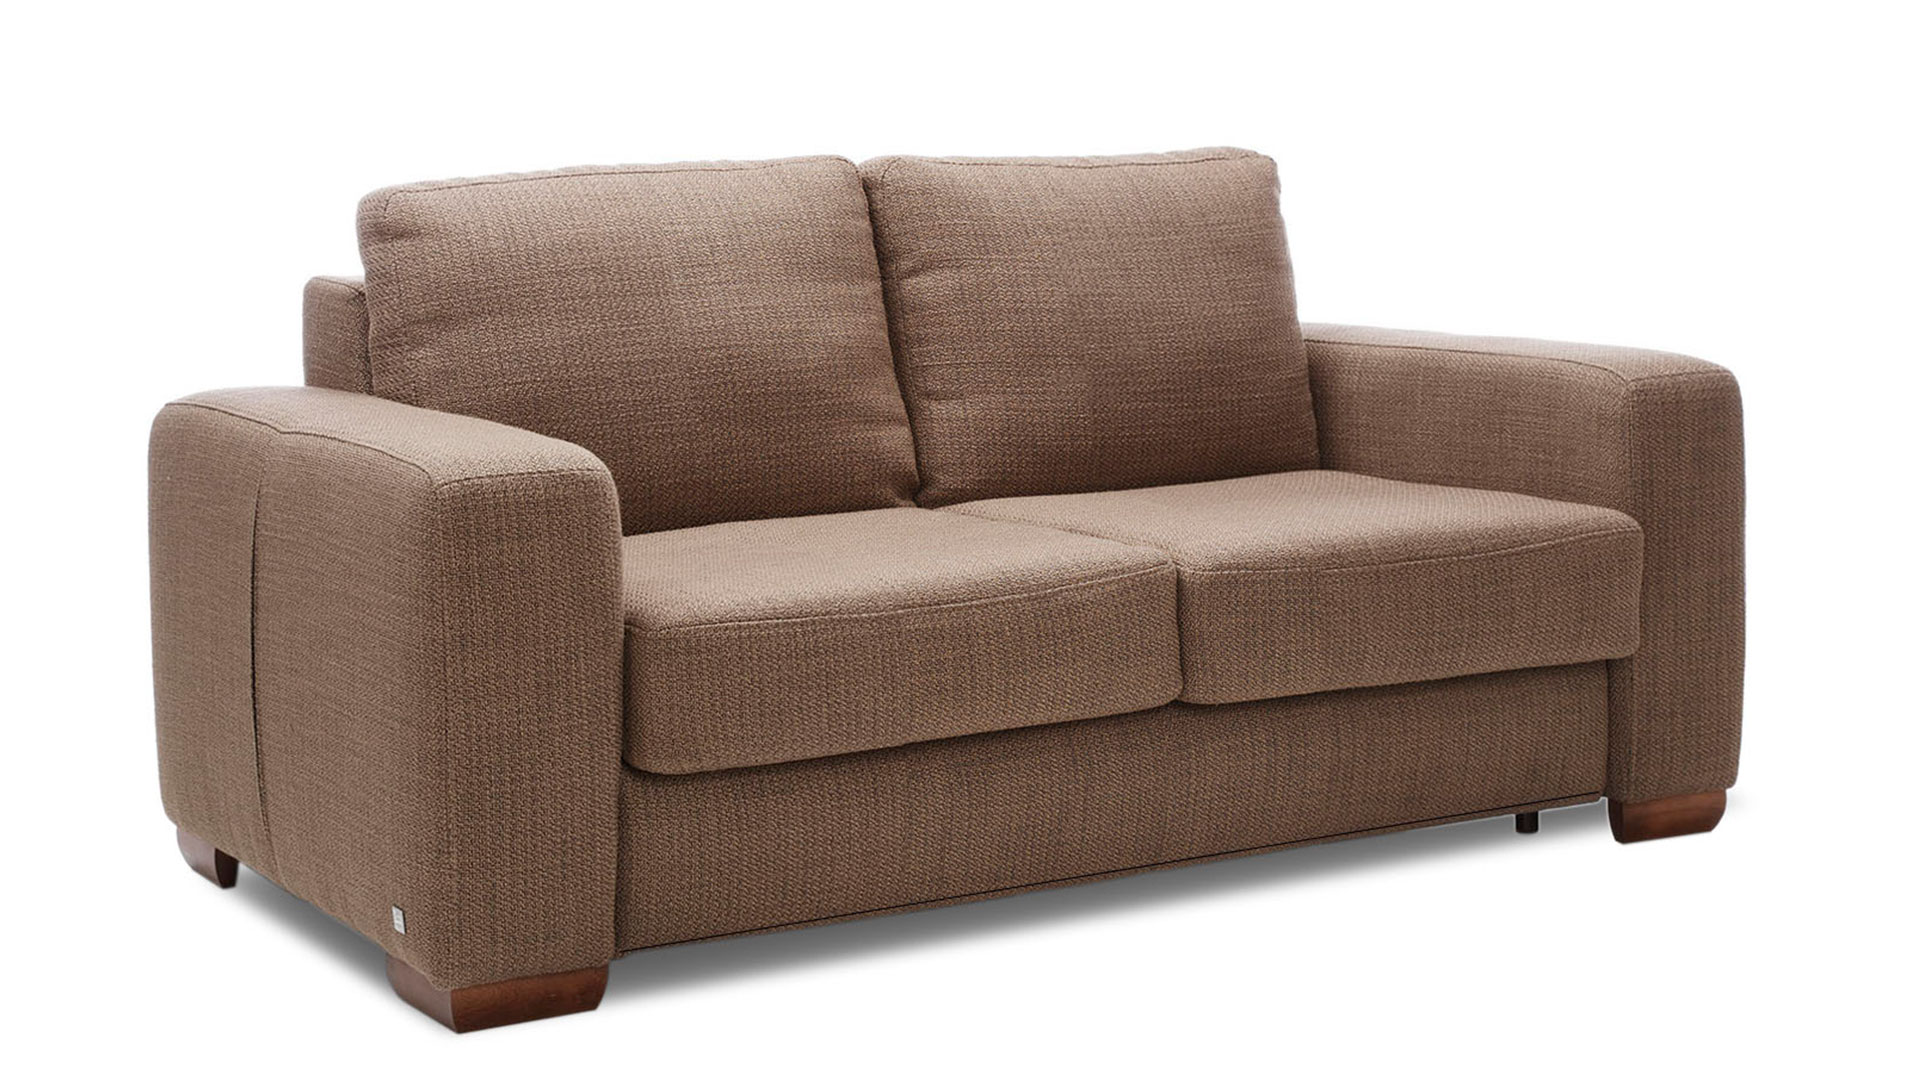 Sofa with sleeping function Space 120